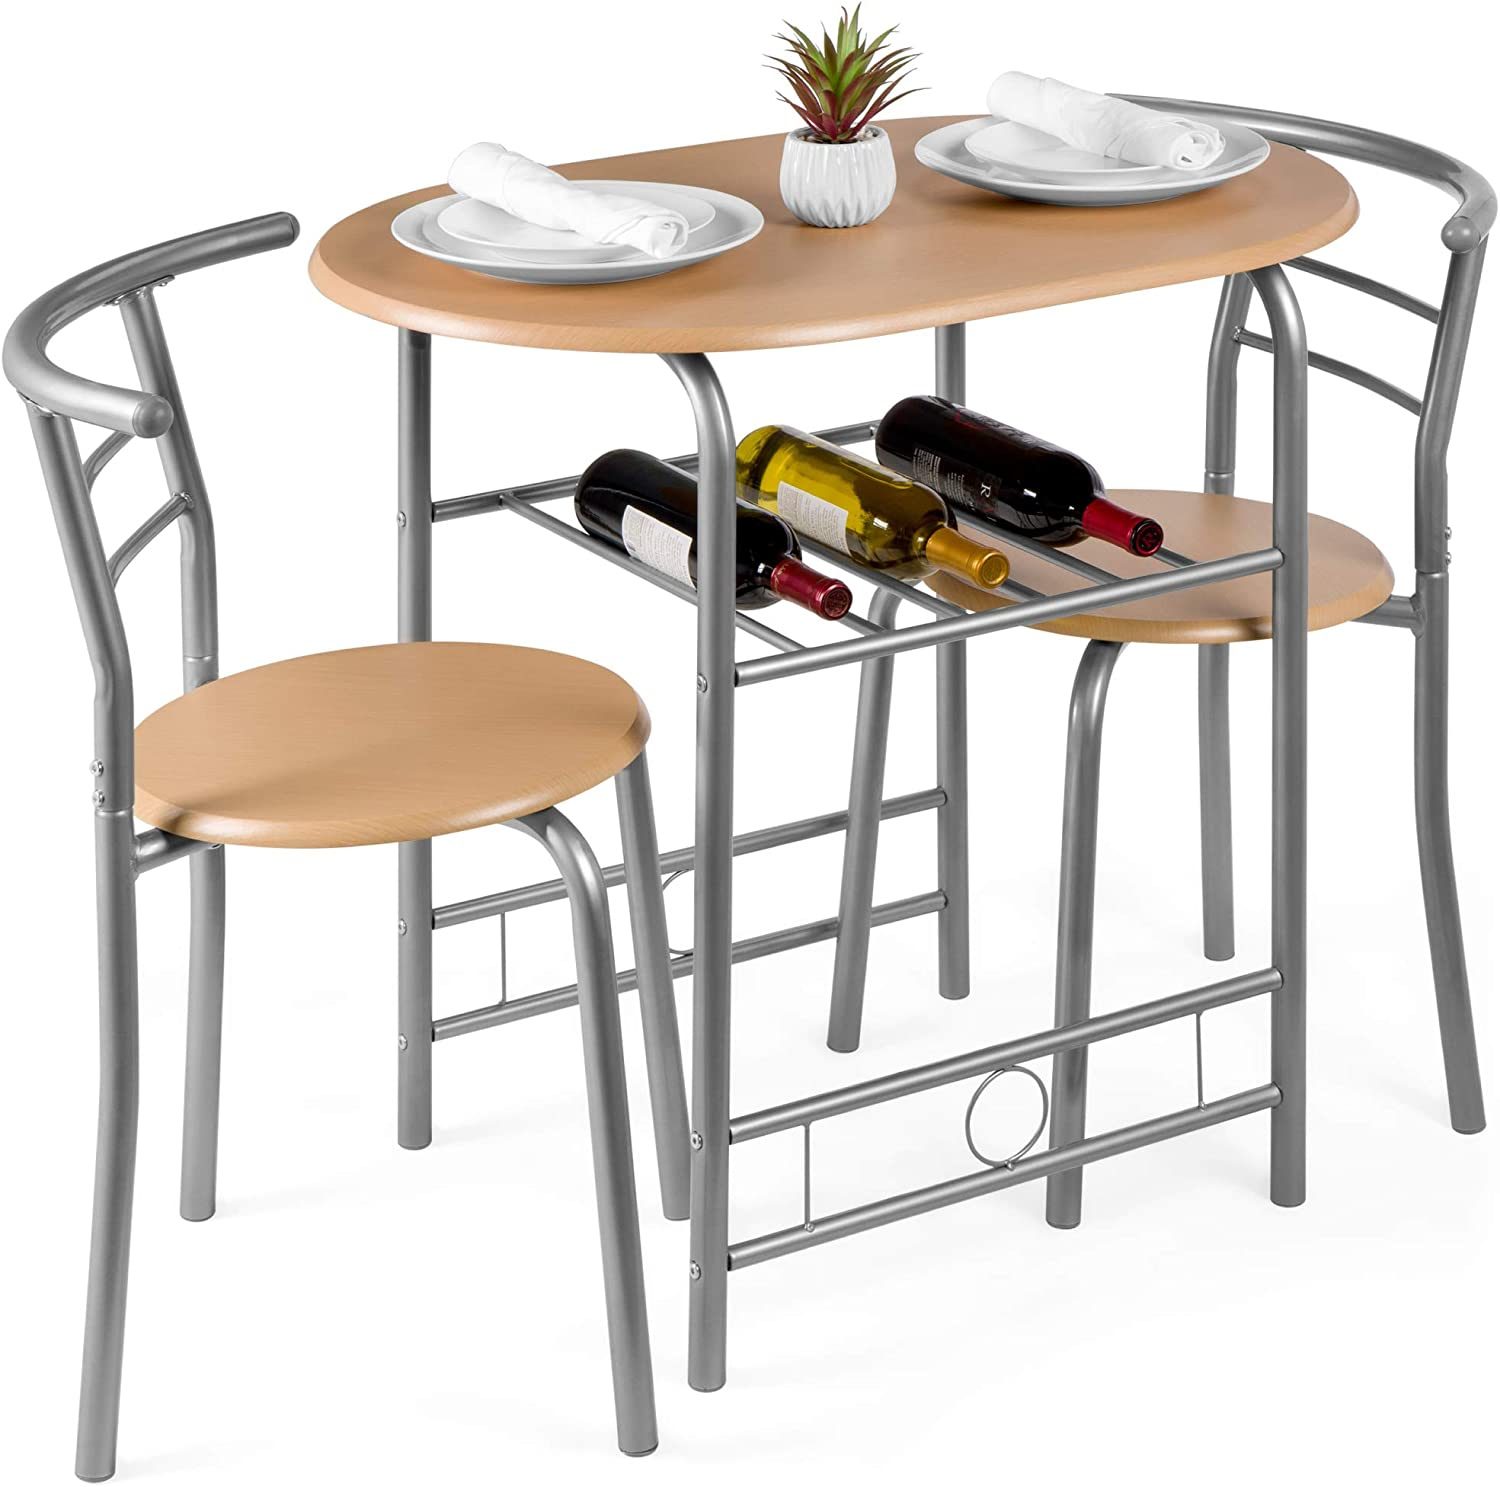 Amazon Com Best Choice Products 3 Piece Wooden Round Table Chair Set For Kitchen Dining Room Compact Space W Steel Frame Built In Wine Rack Natural Furniture Decor